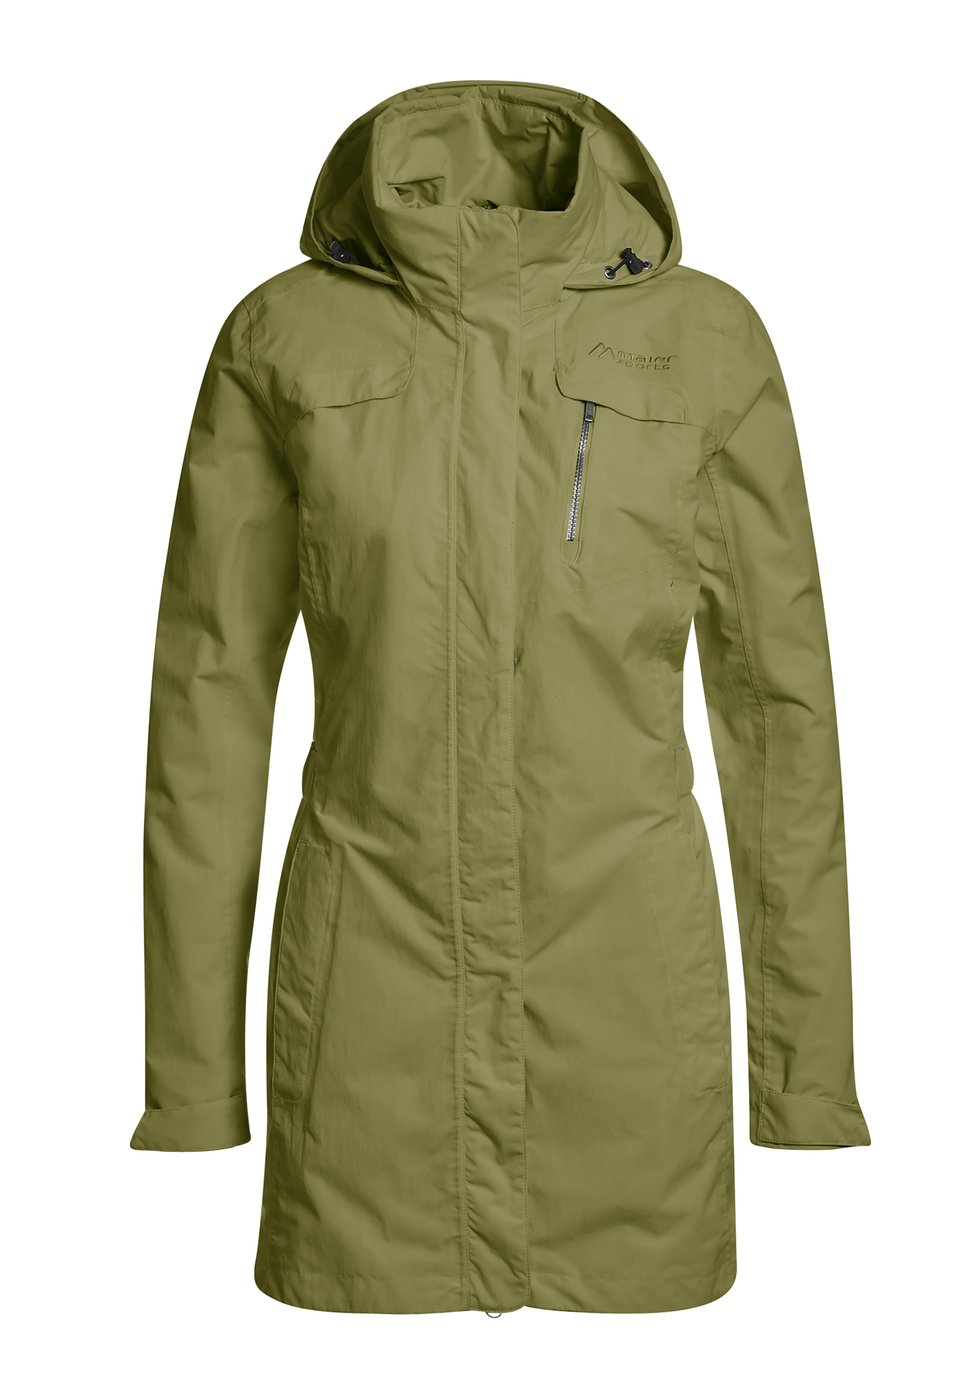 Maier Sports Damen Funktionsjacke Beaumaris - capulet olive - 38